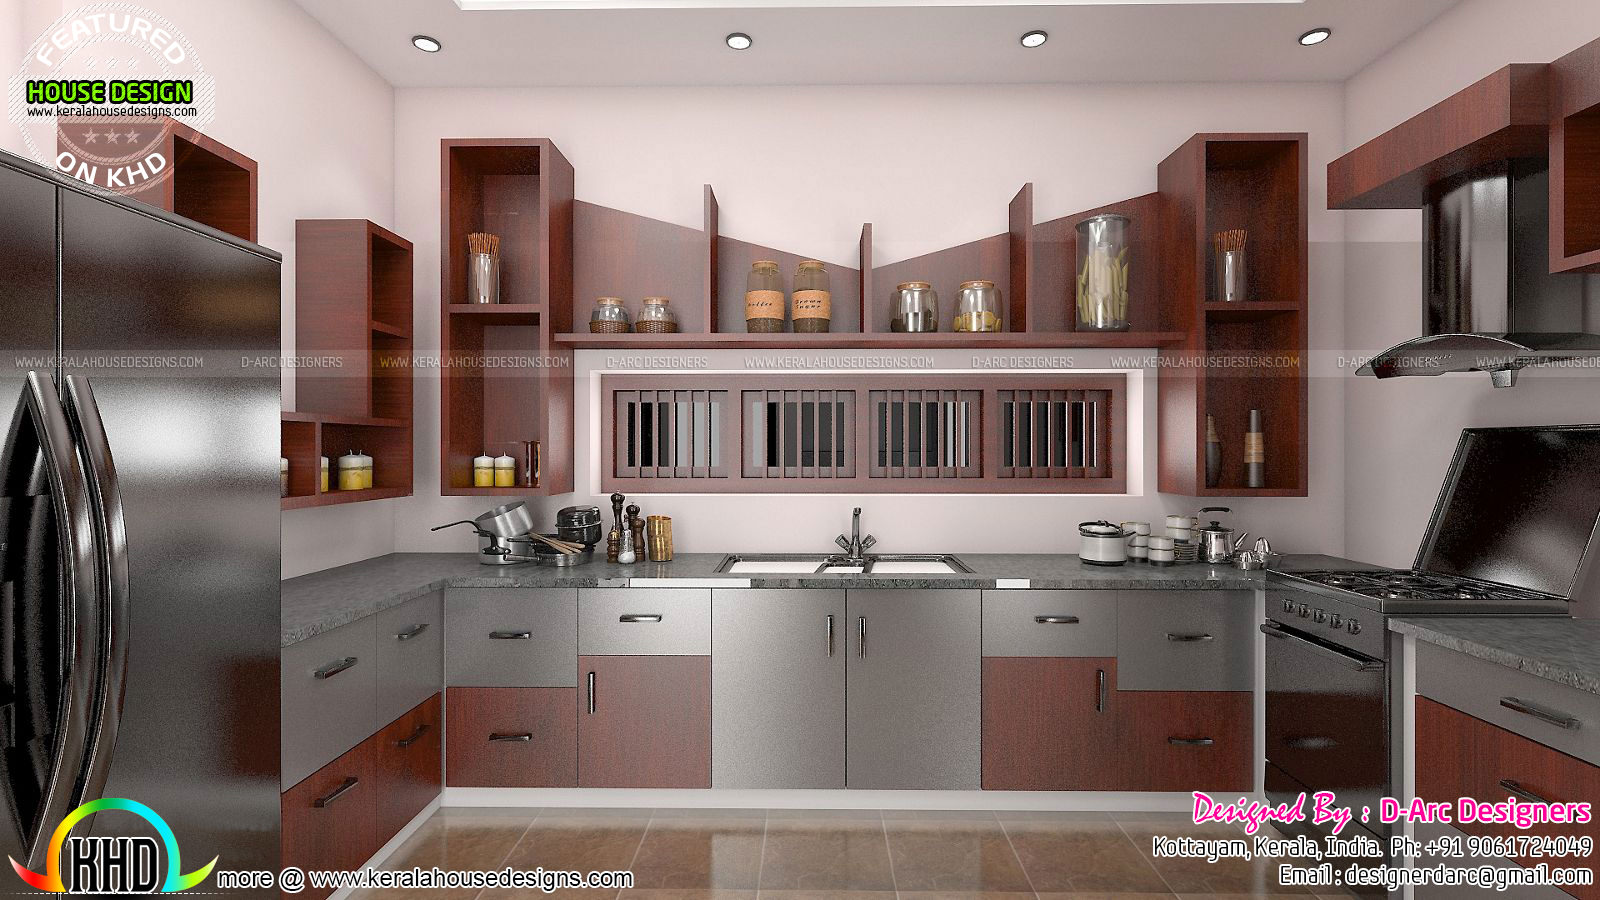 2016 modern interiors design trends kerala home design and floor plans. Black Bedroom Furniture Sets. Home Design Ideas